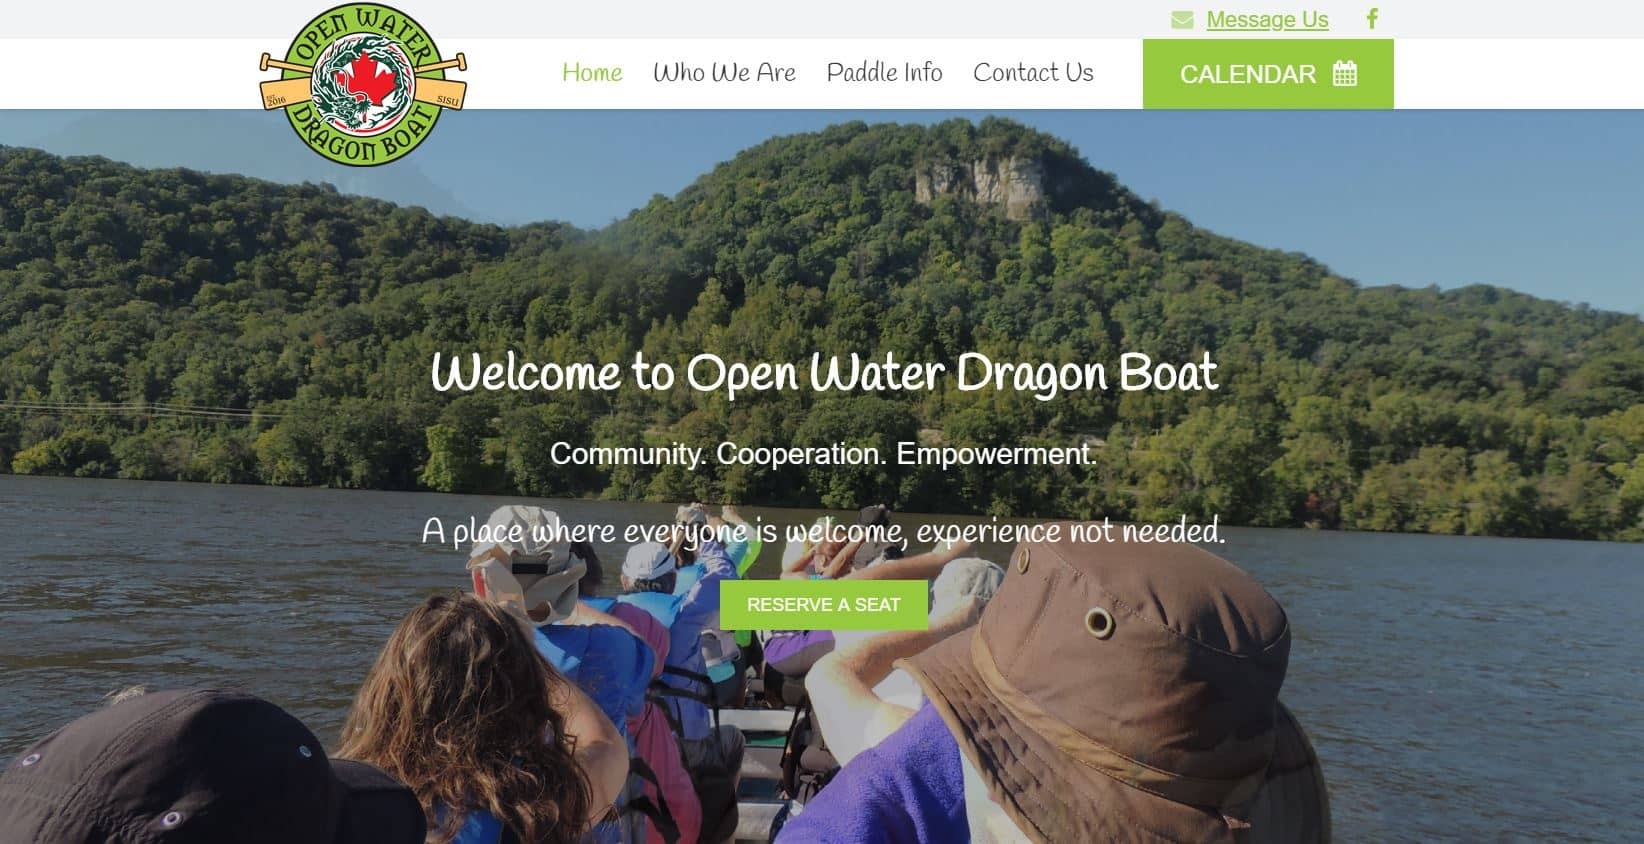 Open Water Dragon Boat